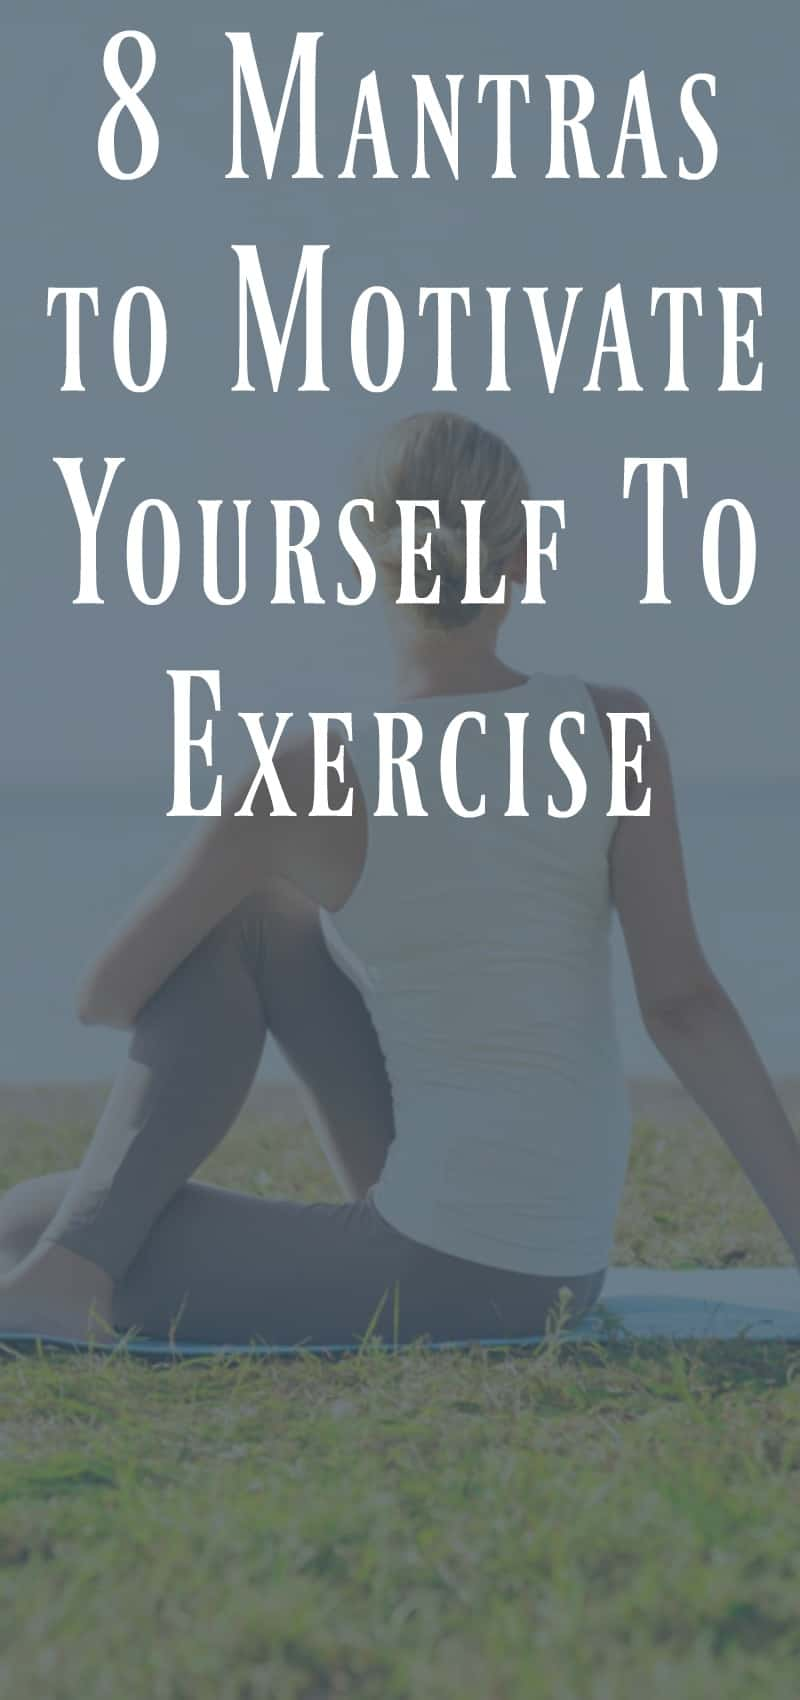 8 Mantras to Motivate Yourself to Exercise